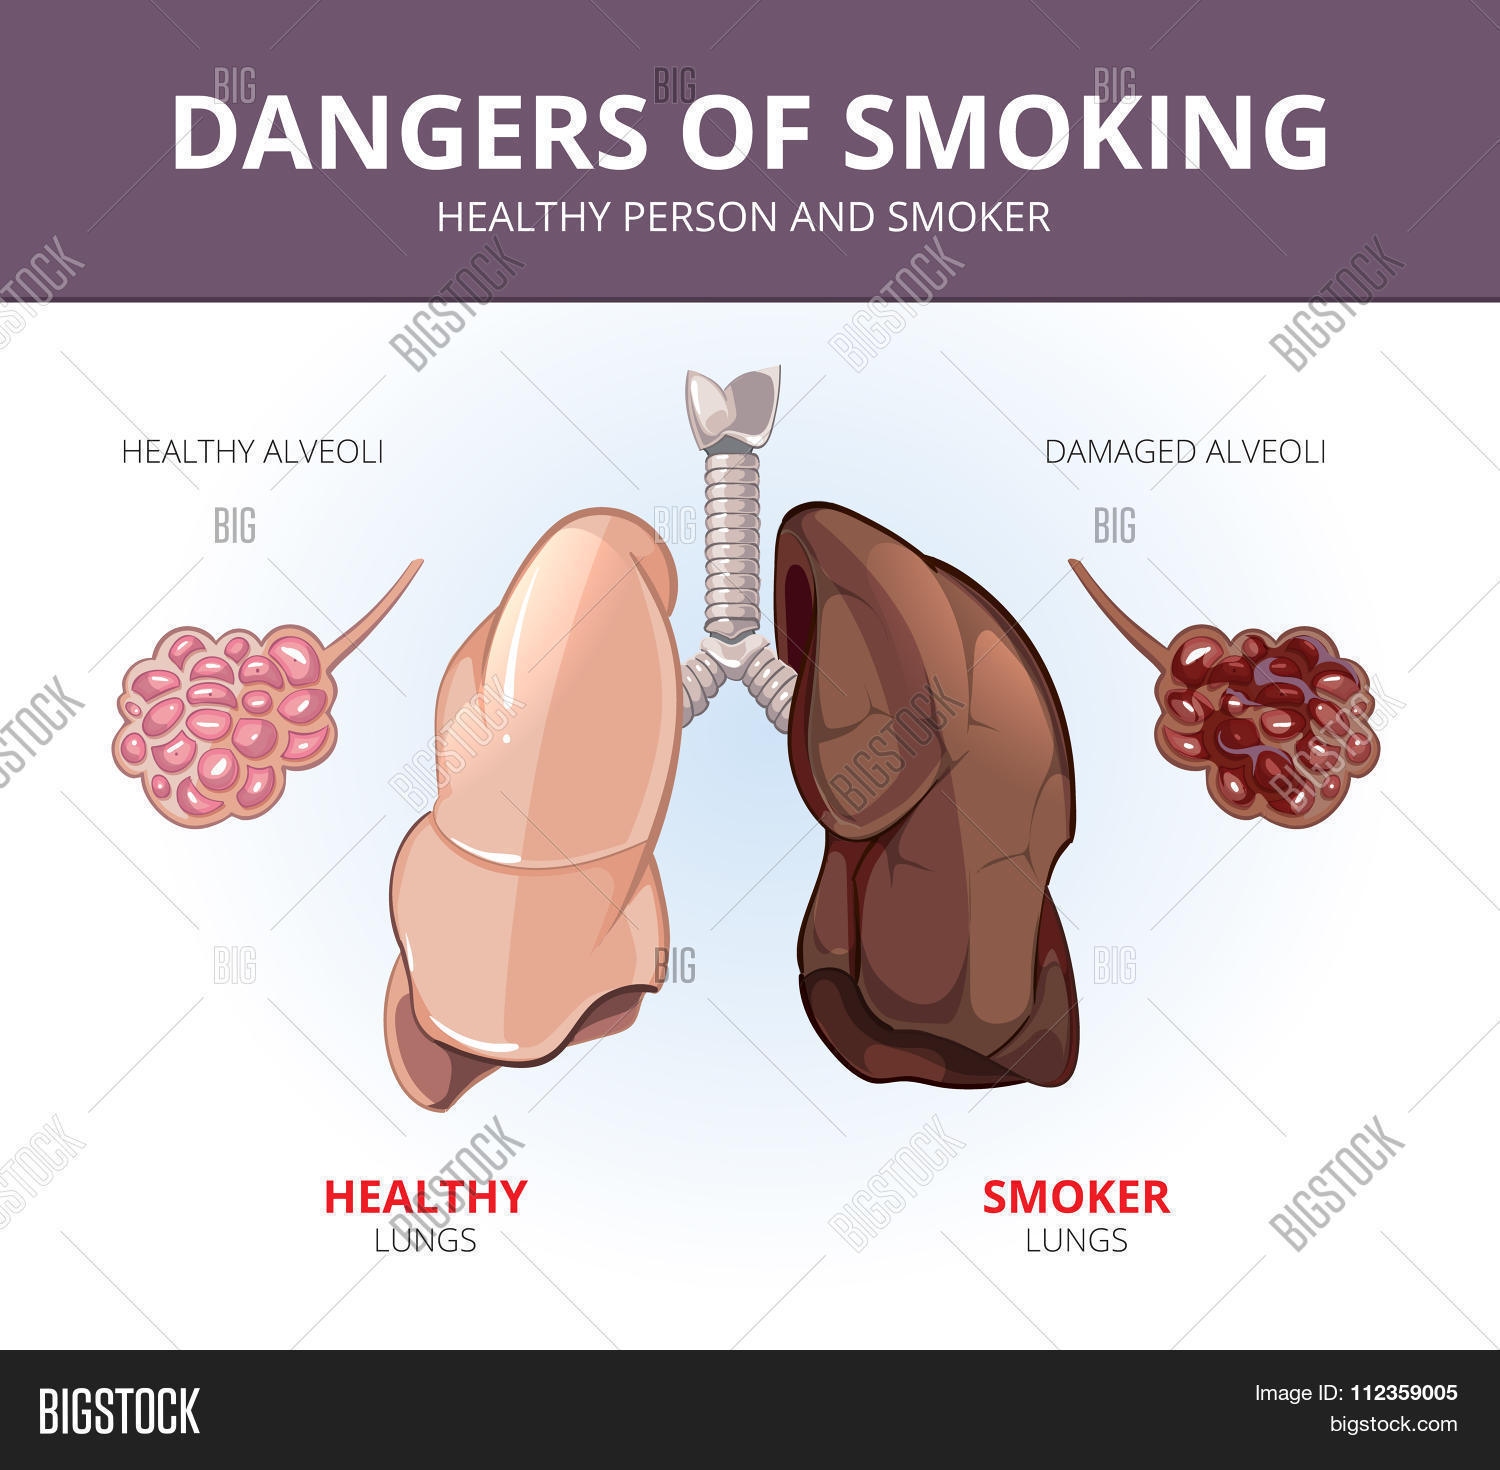 Lungs alveoli healthy vector photo free trial bigstock lungs and alveoli of a healthy person smoker vector medical diagram ccuart Images